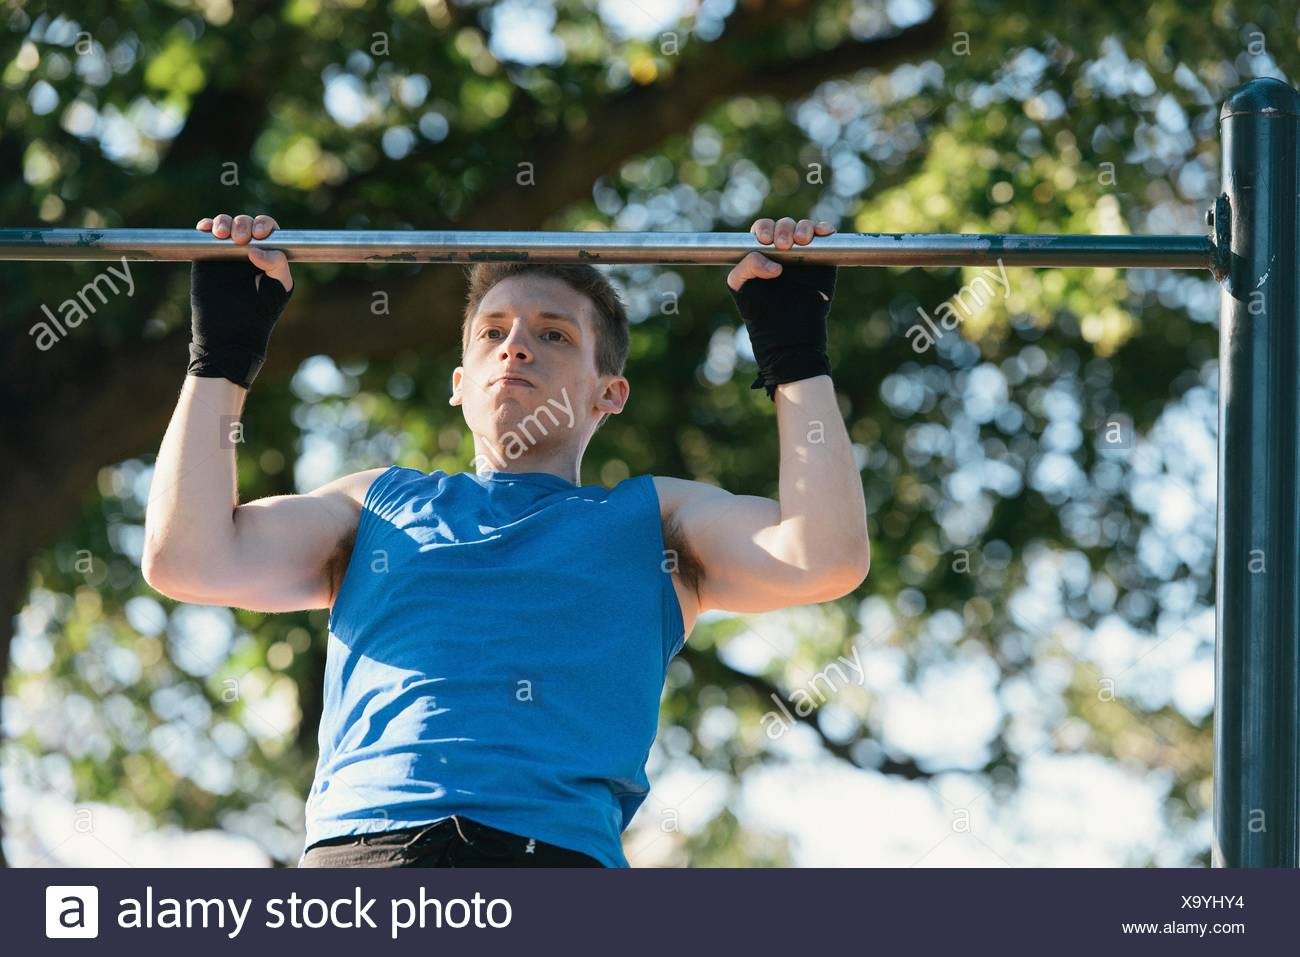 Young man exercising, doing pull-ups on bar - Stock Image